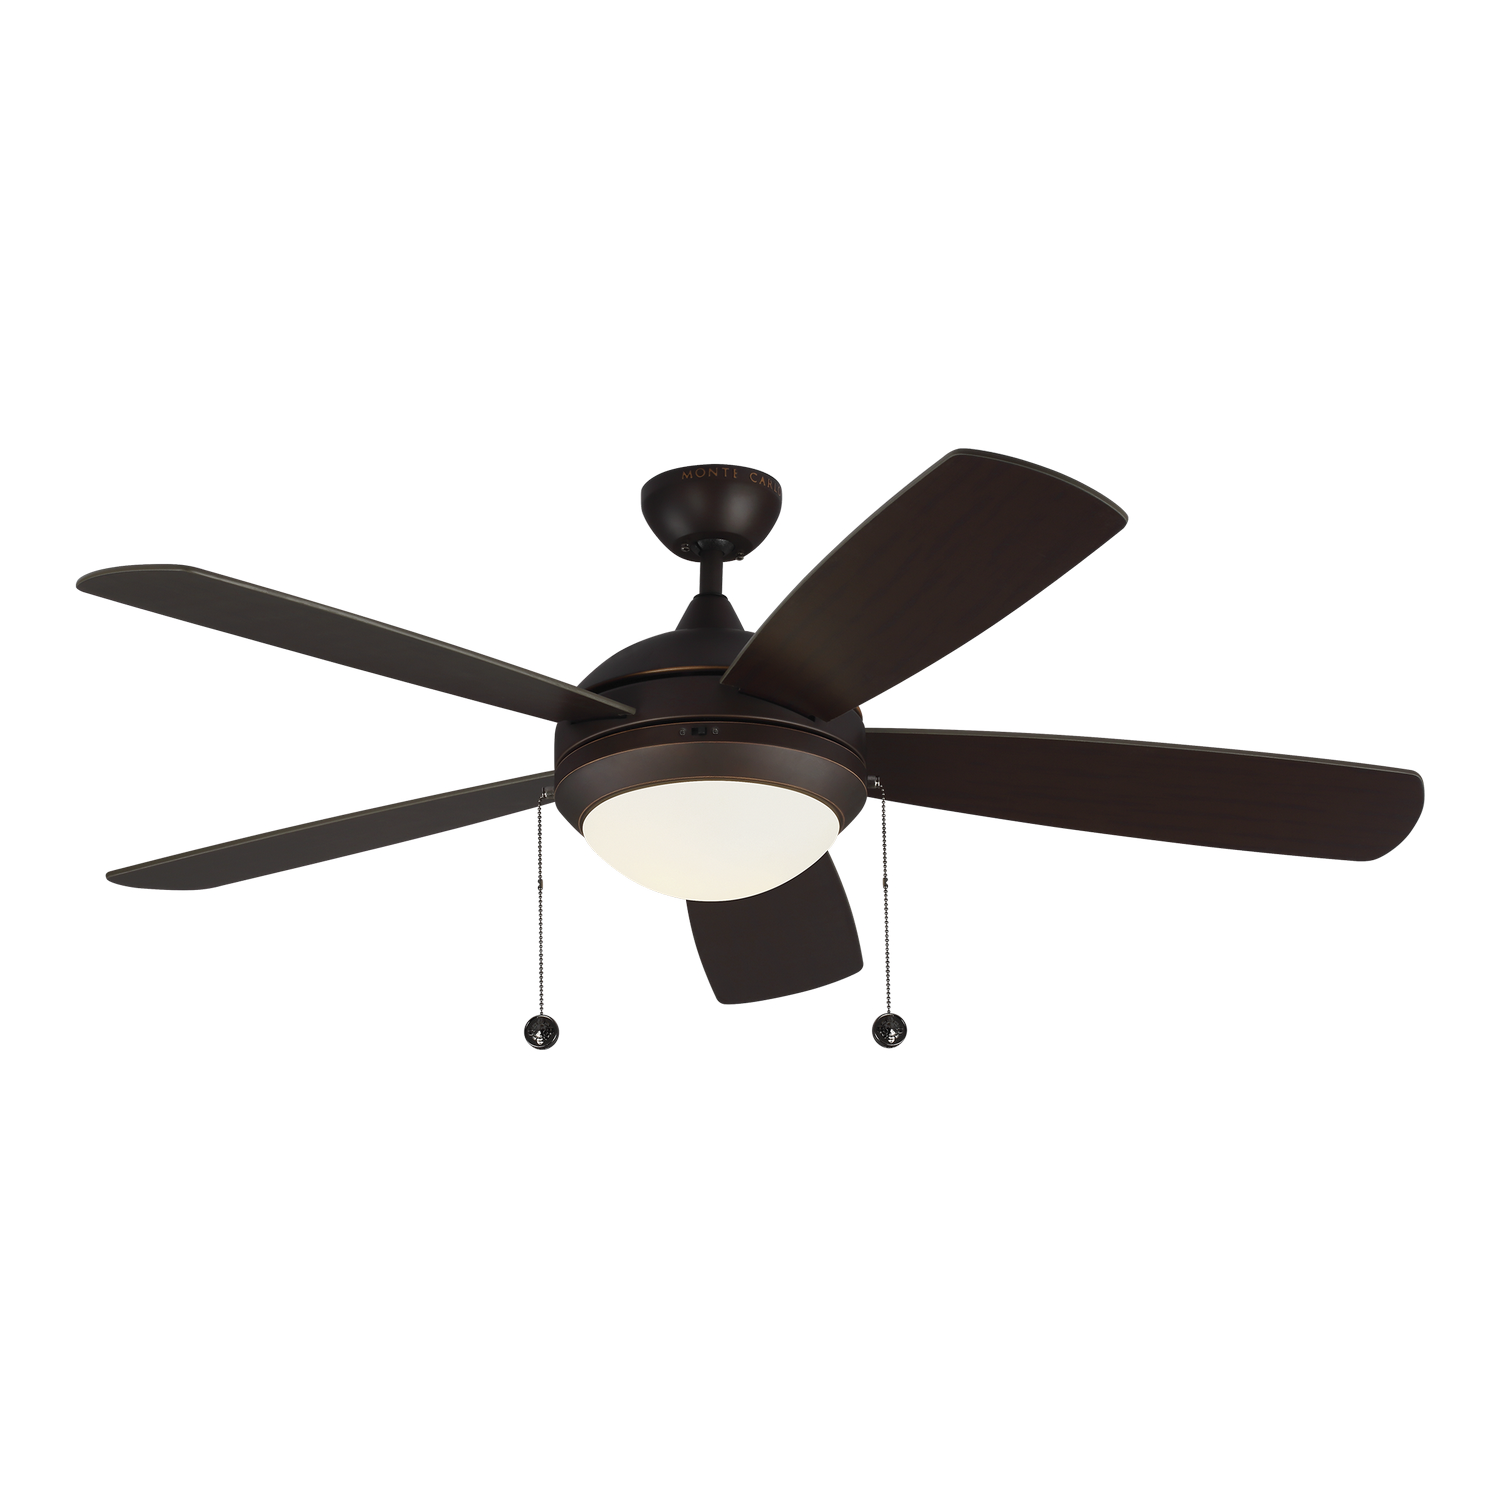 52 inchCeiling Fan from the Discus Classic collection by Monte Carlo 5DIC52RBD V1